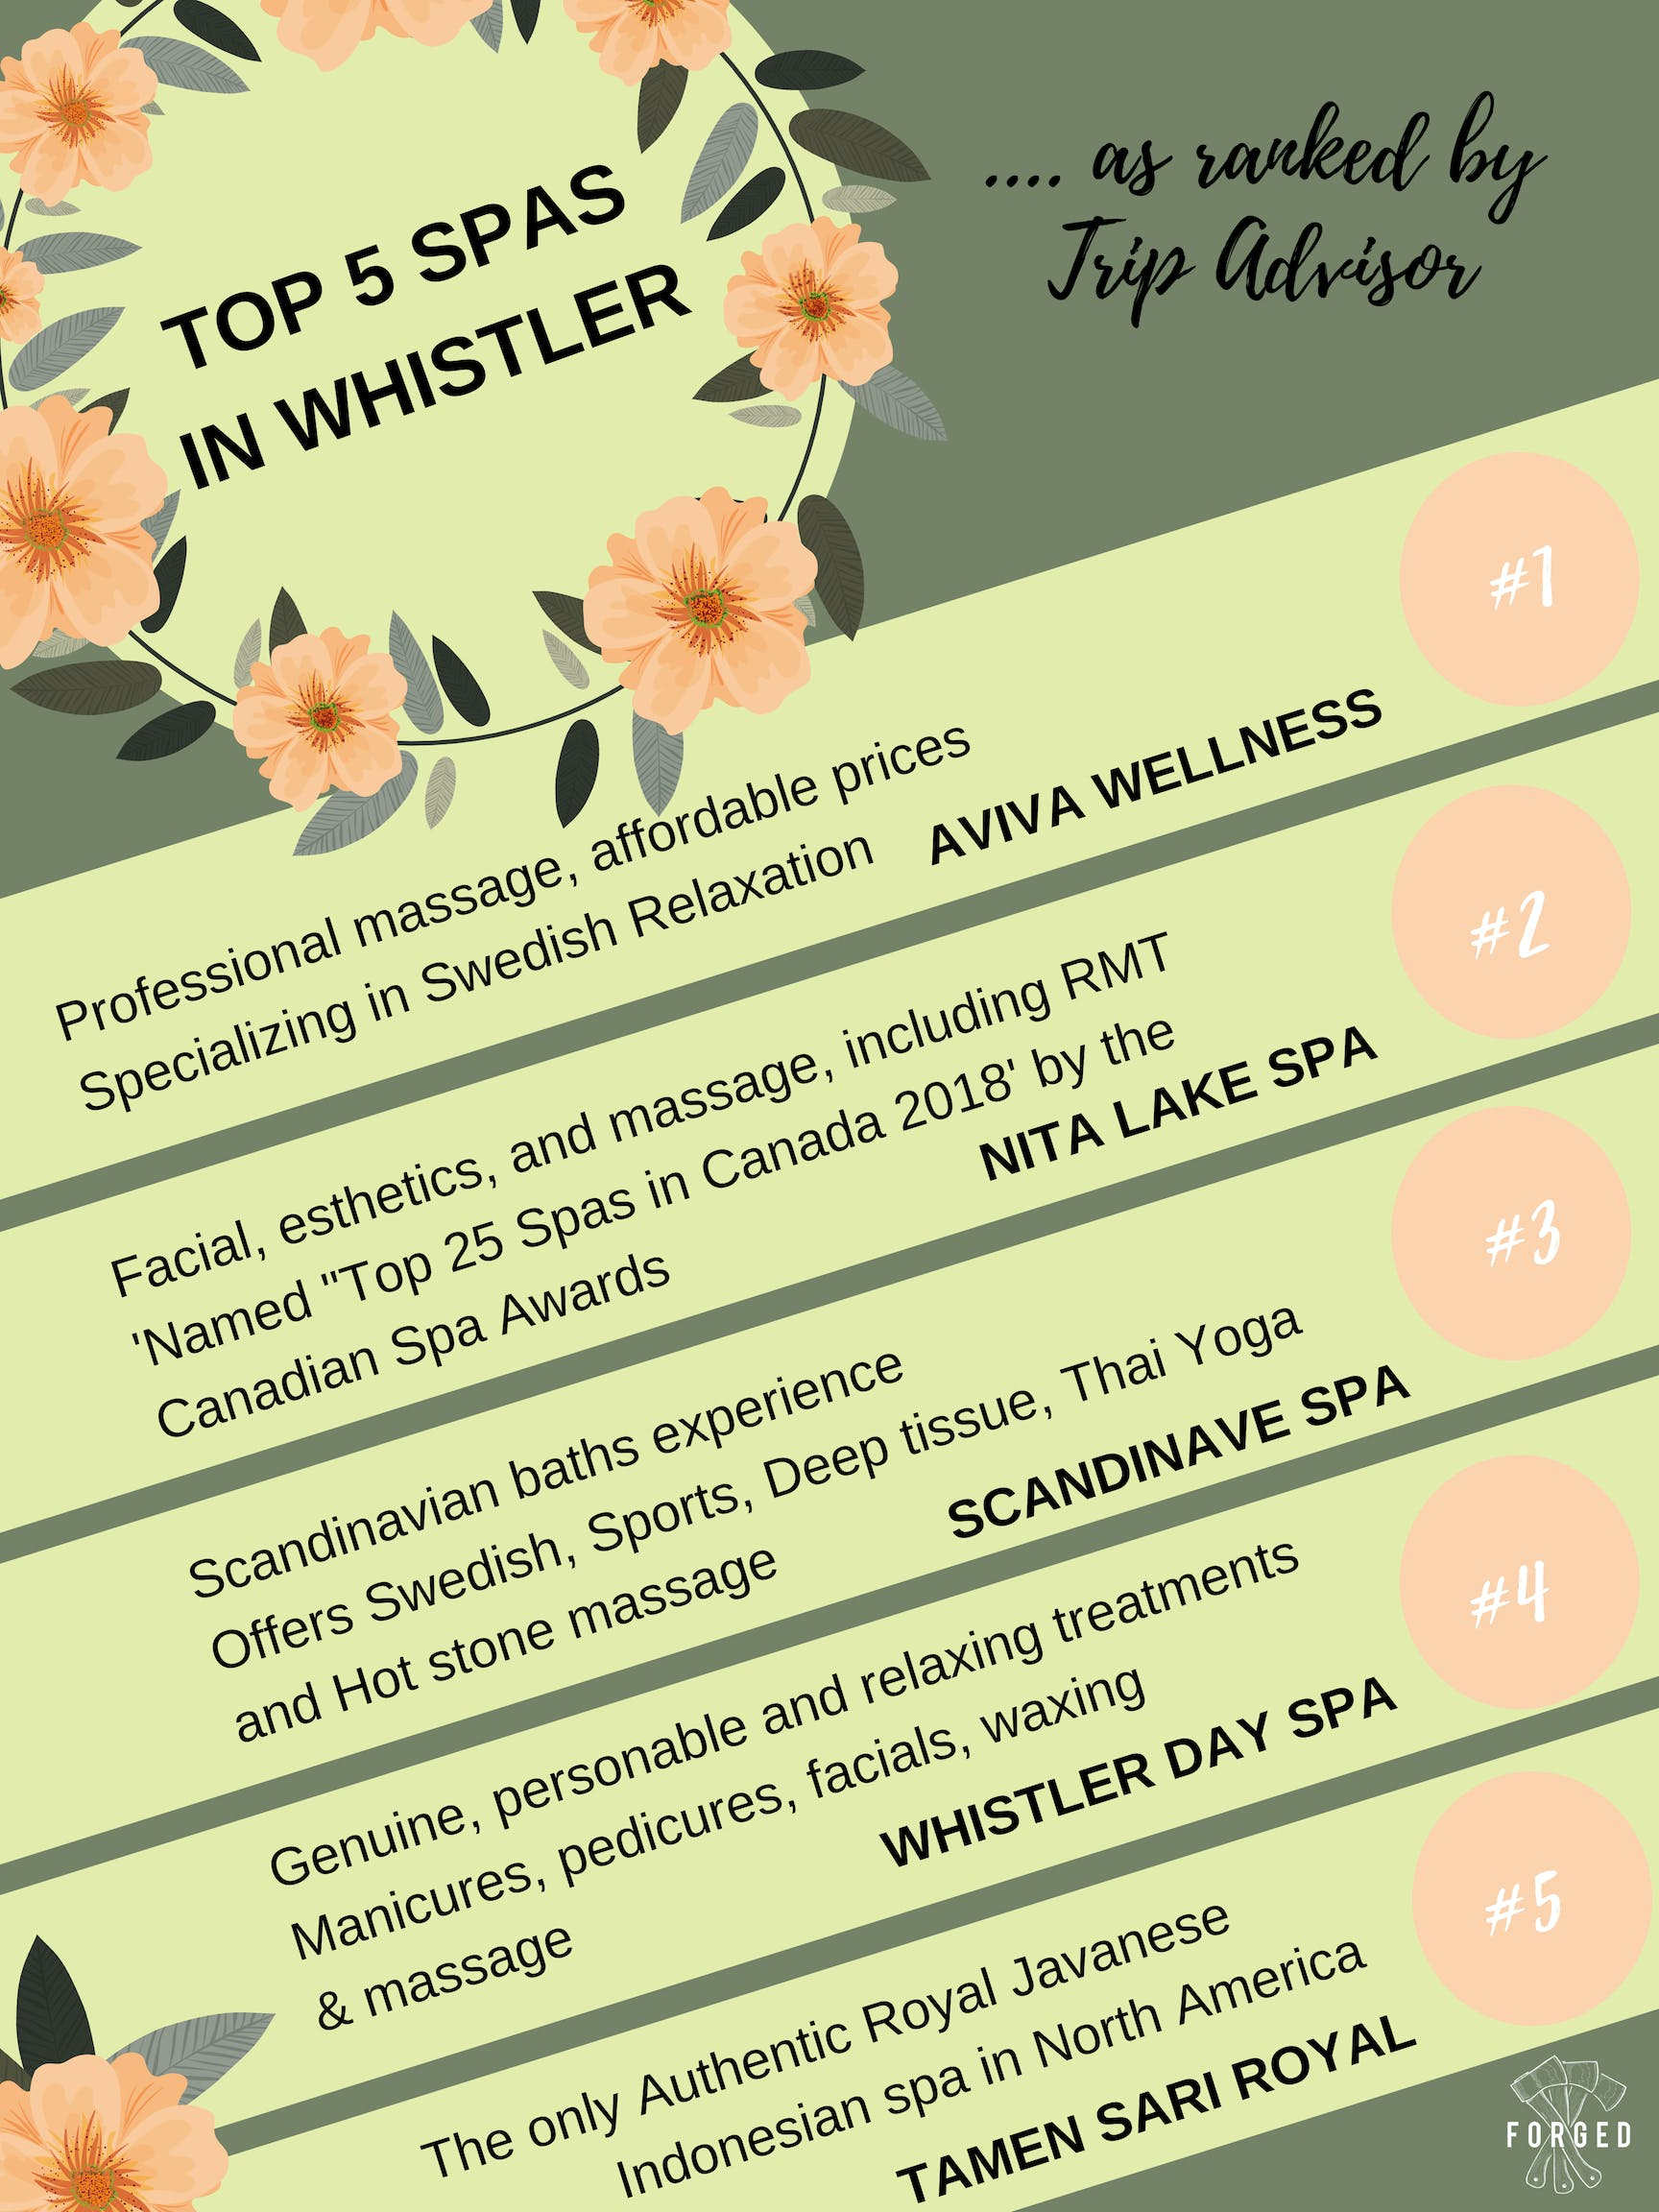 Top spas in Whistler by Tripadvisor